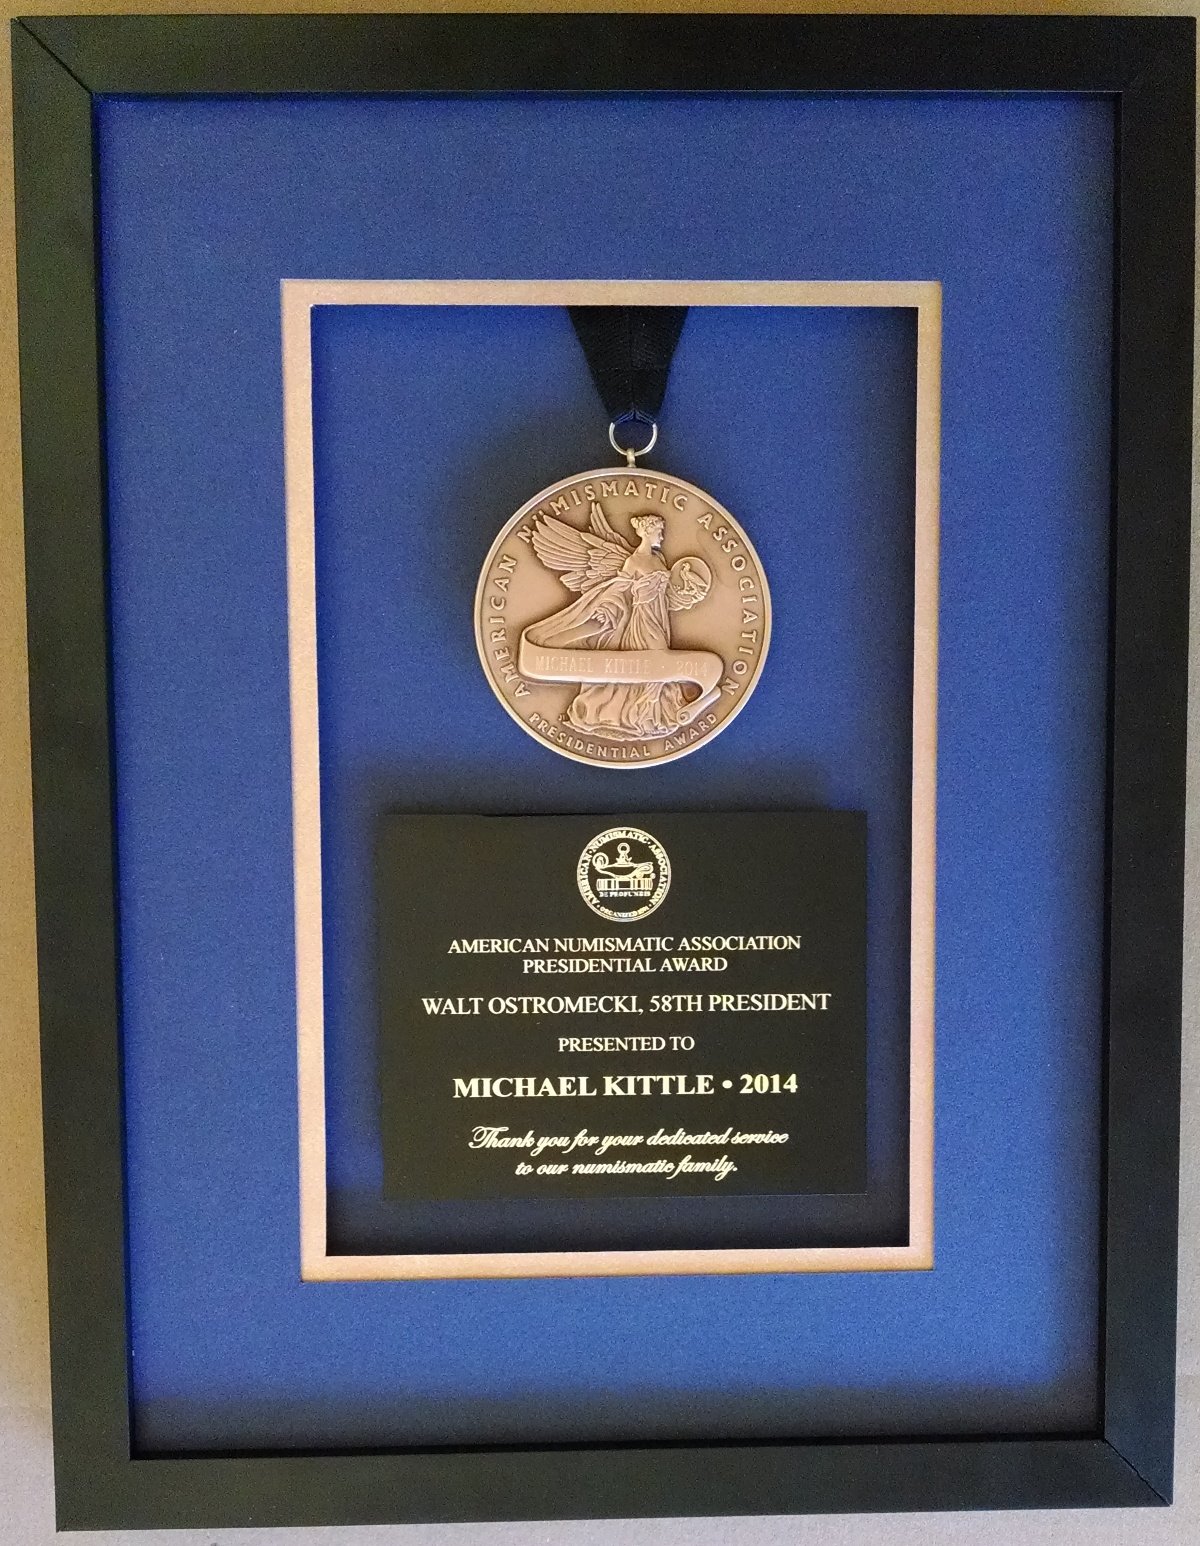 ANA Presidential Award issued to Michael Kittle March 2014